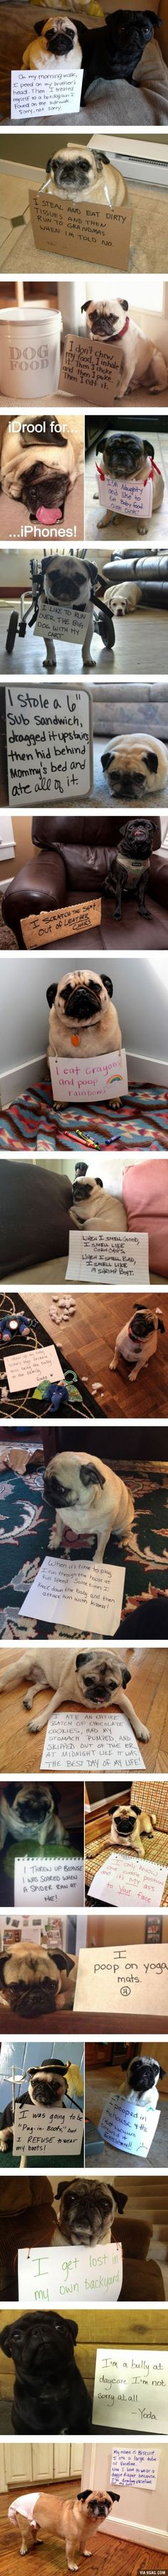 dog shaming - pug compilation {Pugs are my favorite cause they're so cute & little. These guys & they're bad deeds make them adorable❤❤} Animals And Pets, Funny Animals, Cute Animals, Cute Pugs, Cute Puppies, Pug Love, I Love Dogs, Pekinese, Dog Shaming